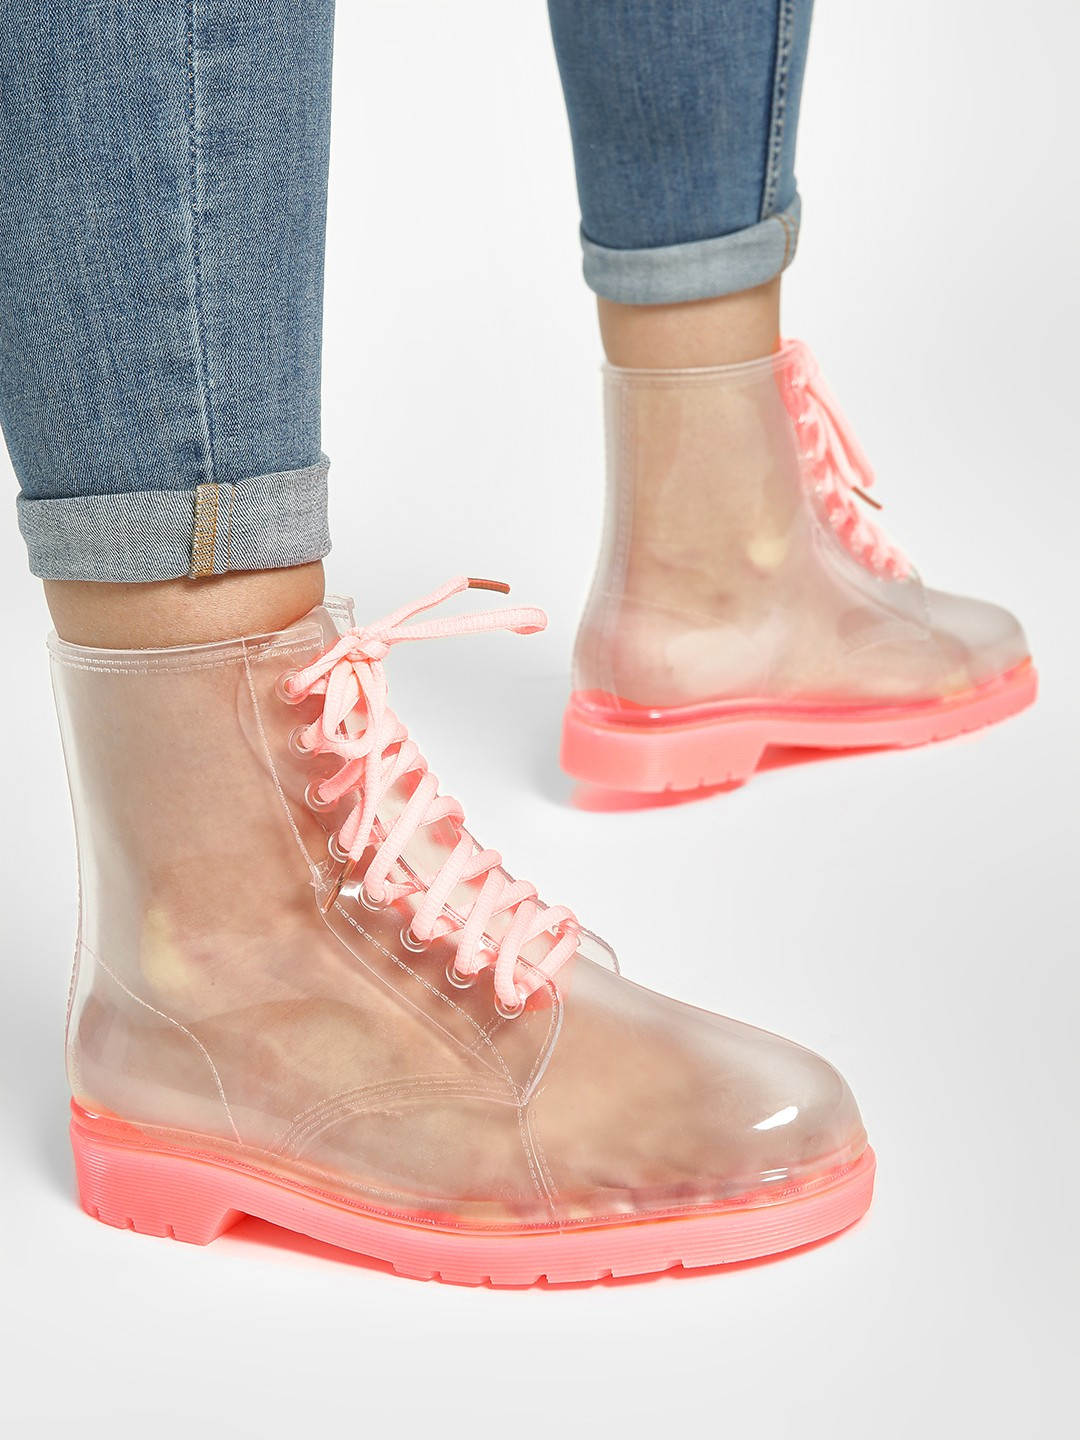 Sole Story Pink Ombre Rain Boots 1